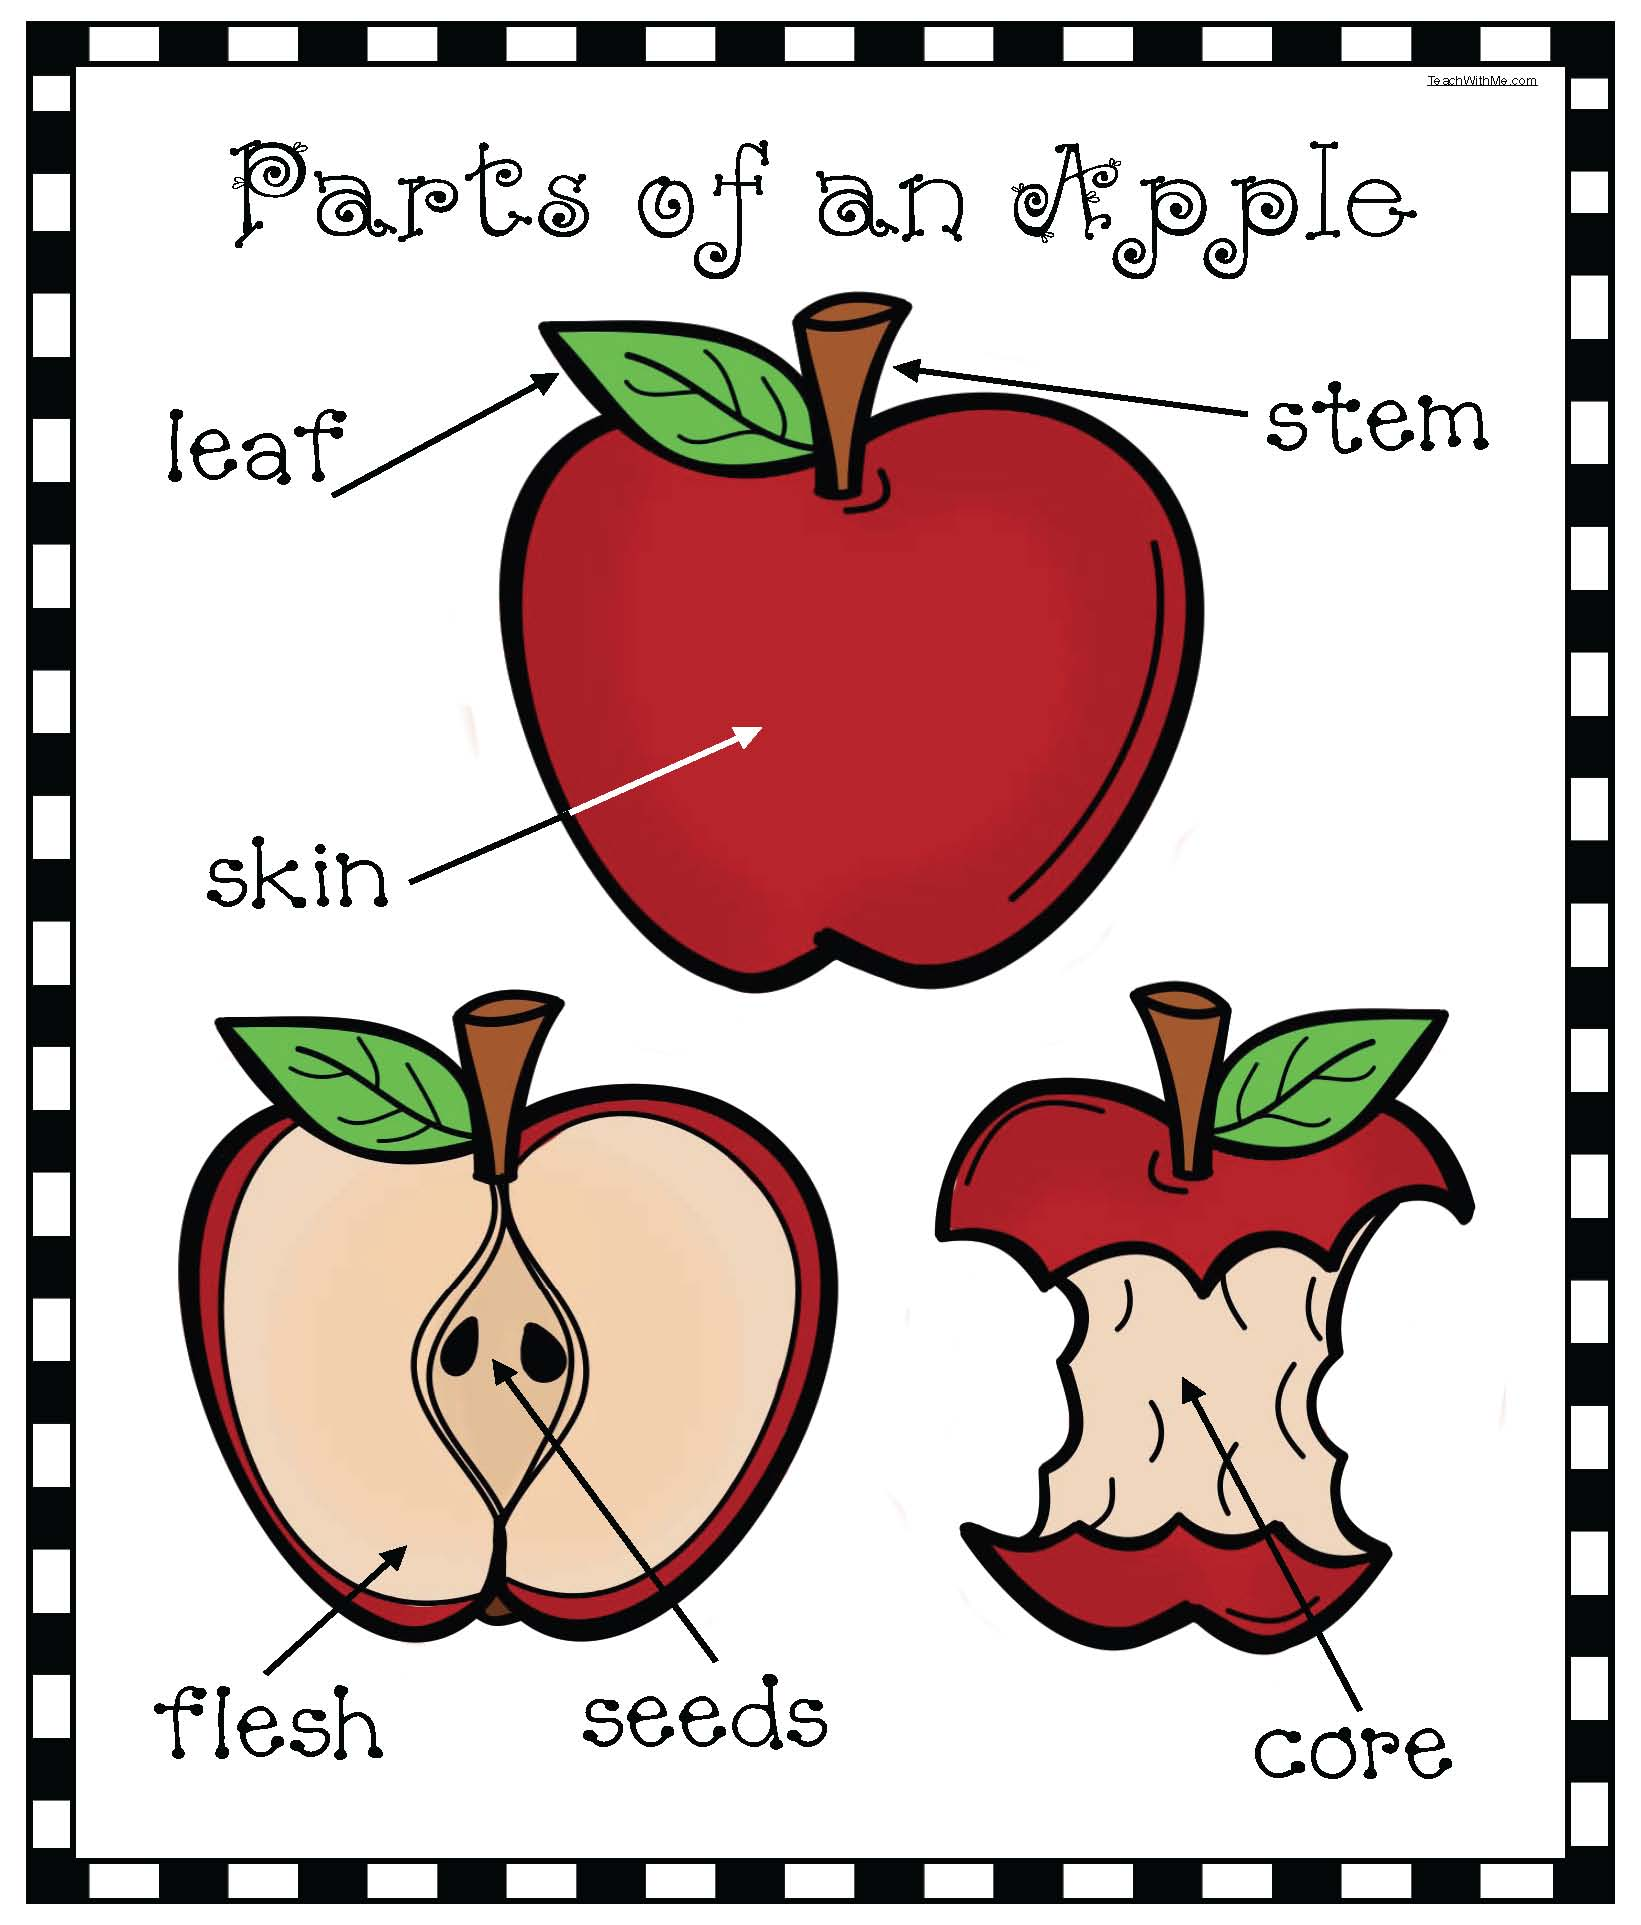 parts of an apple activities, apple activities, apple worksheets, apple emergent reader, apple crafts, stained glass tissue paper apples, parts of an apple poster, parts of an apple worksheet, parts of an apple pocket chart cards